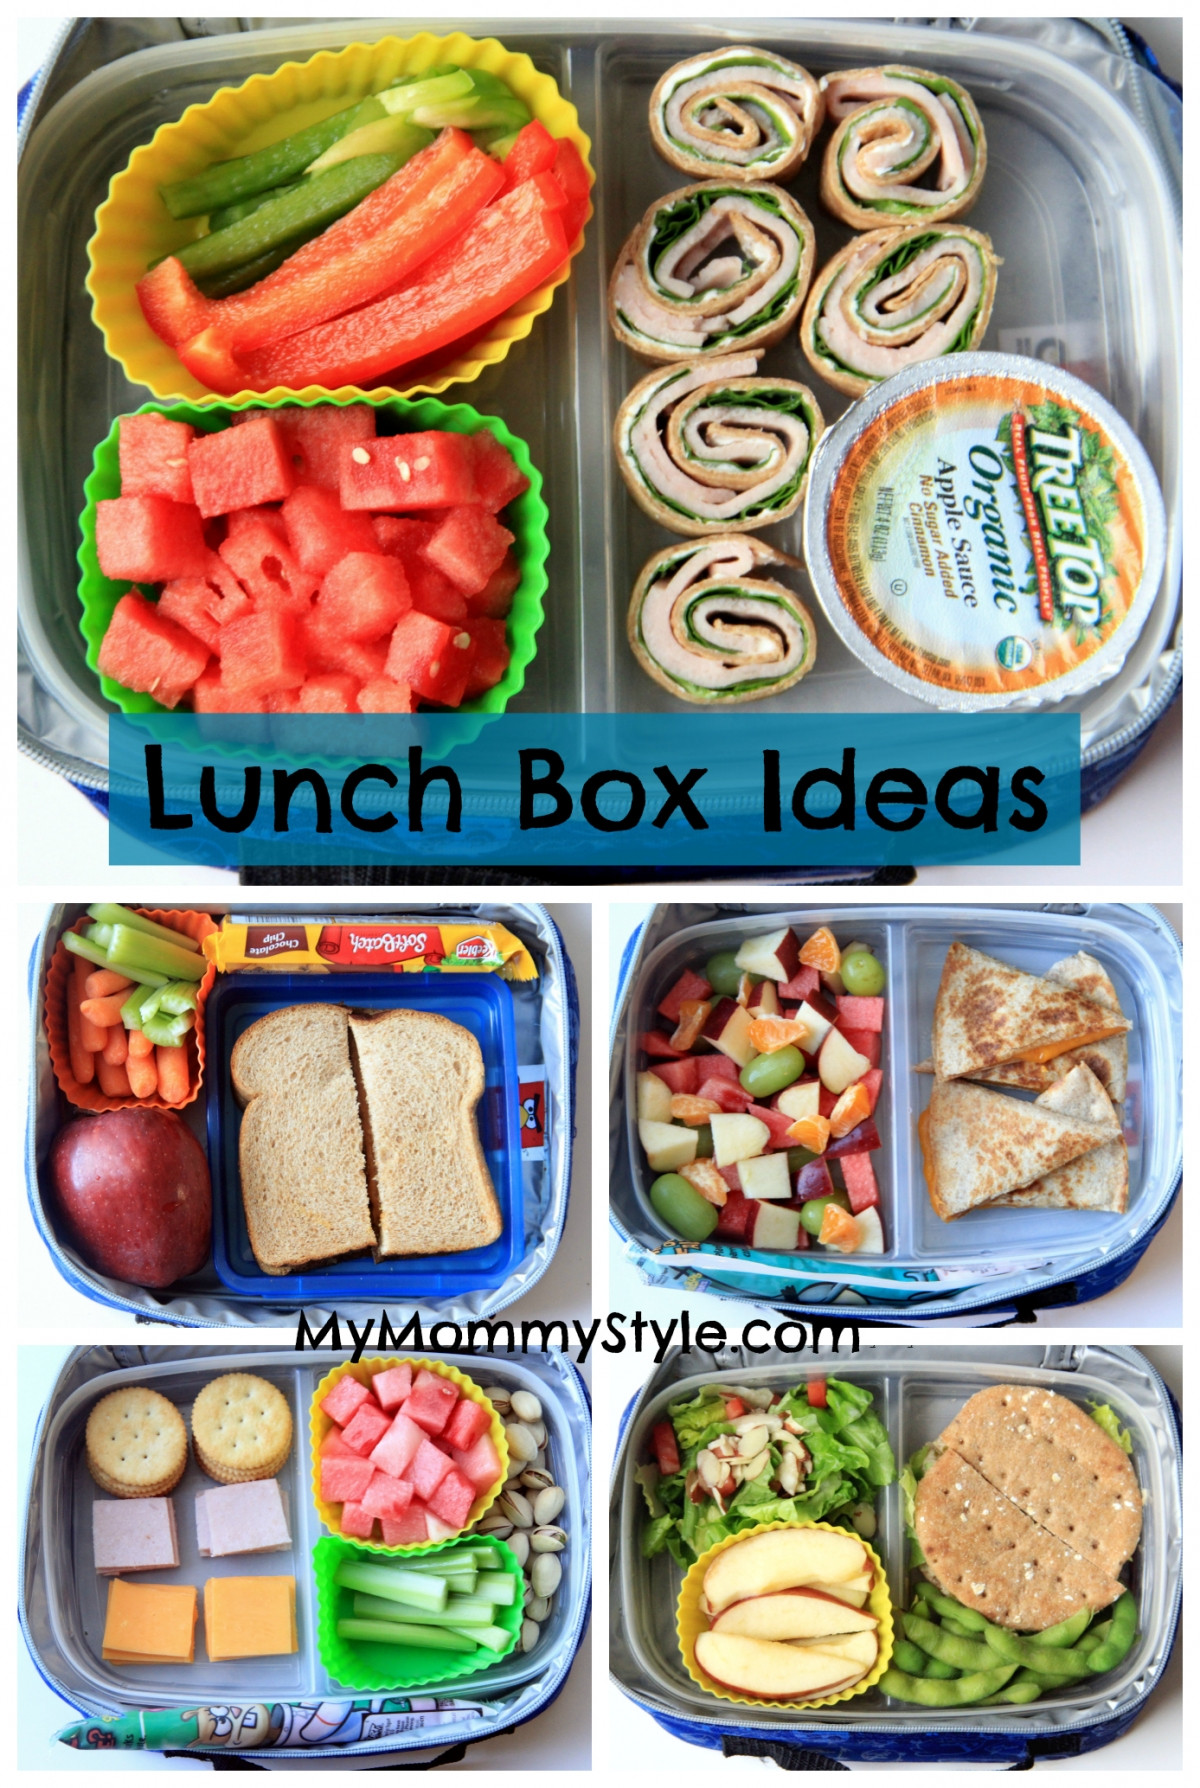 Healthy Kids Lunches  Healthy Lunch Box ideas week 2 My Mommy Style